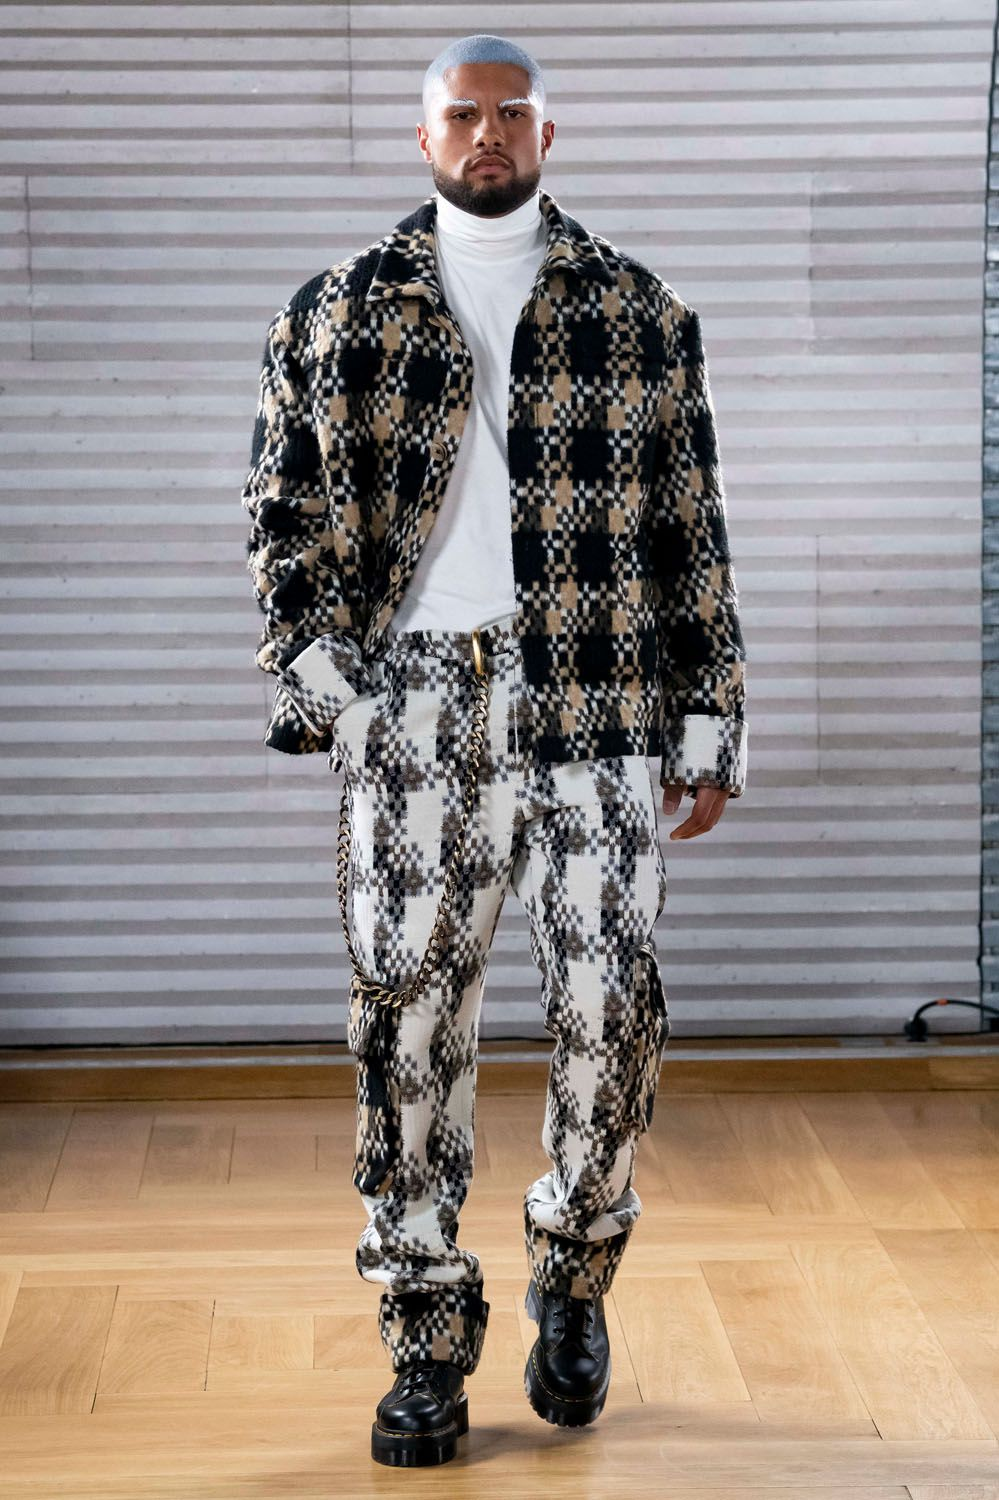 GUNTHER FALL 2020 MENSWEAR COLLECTION AT PFW